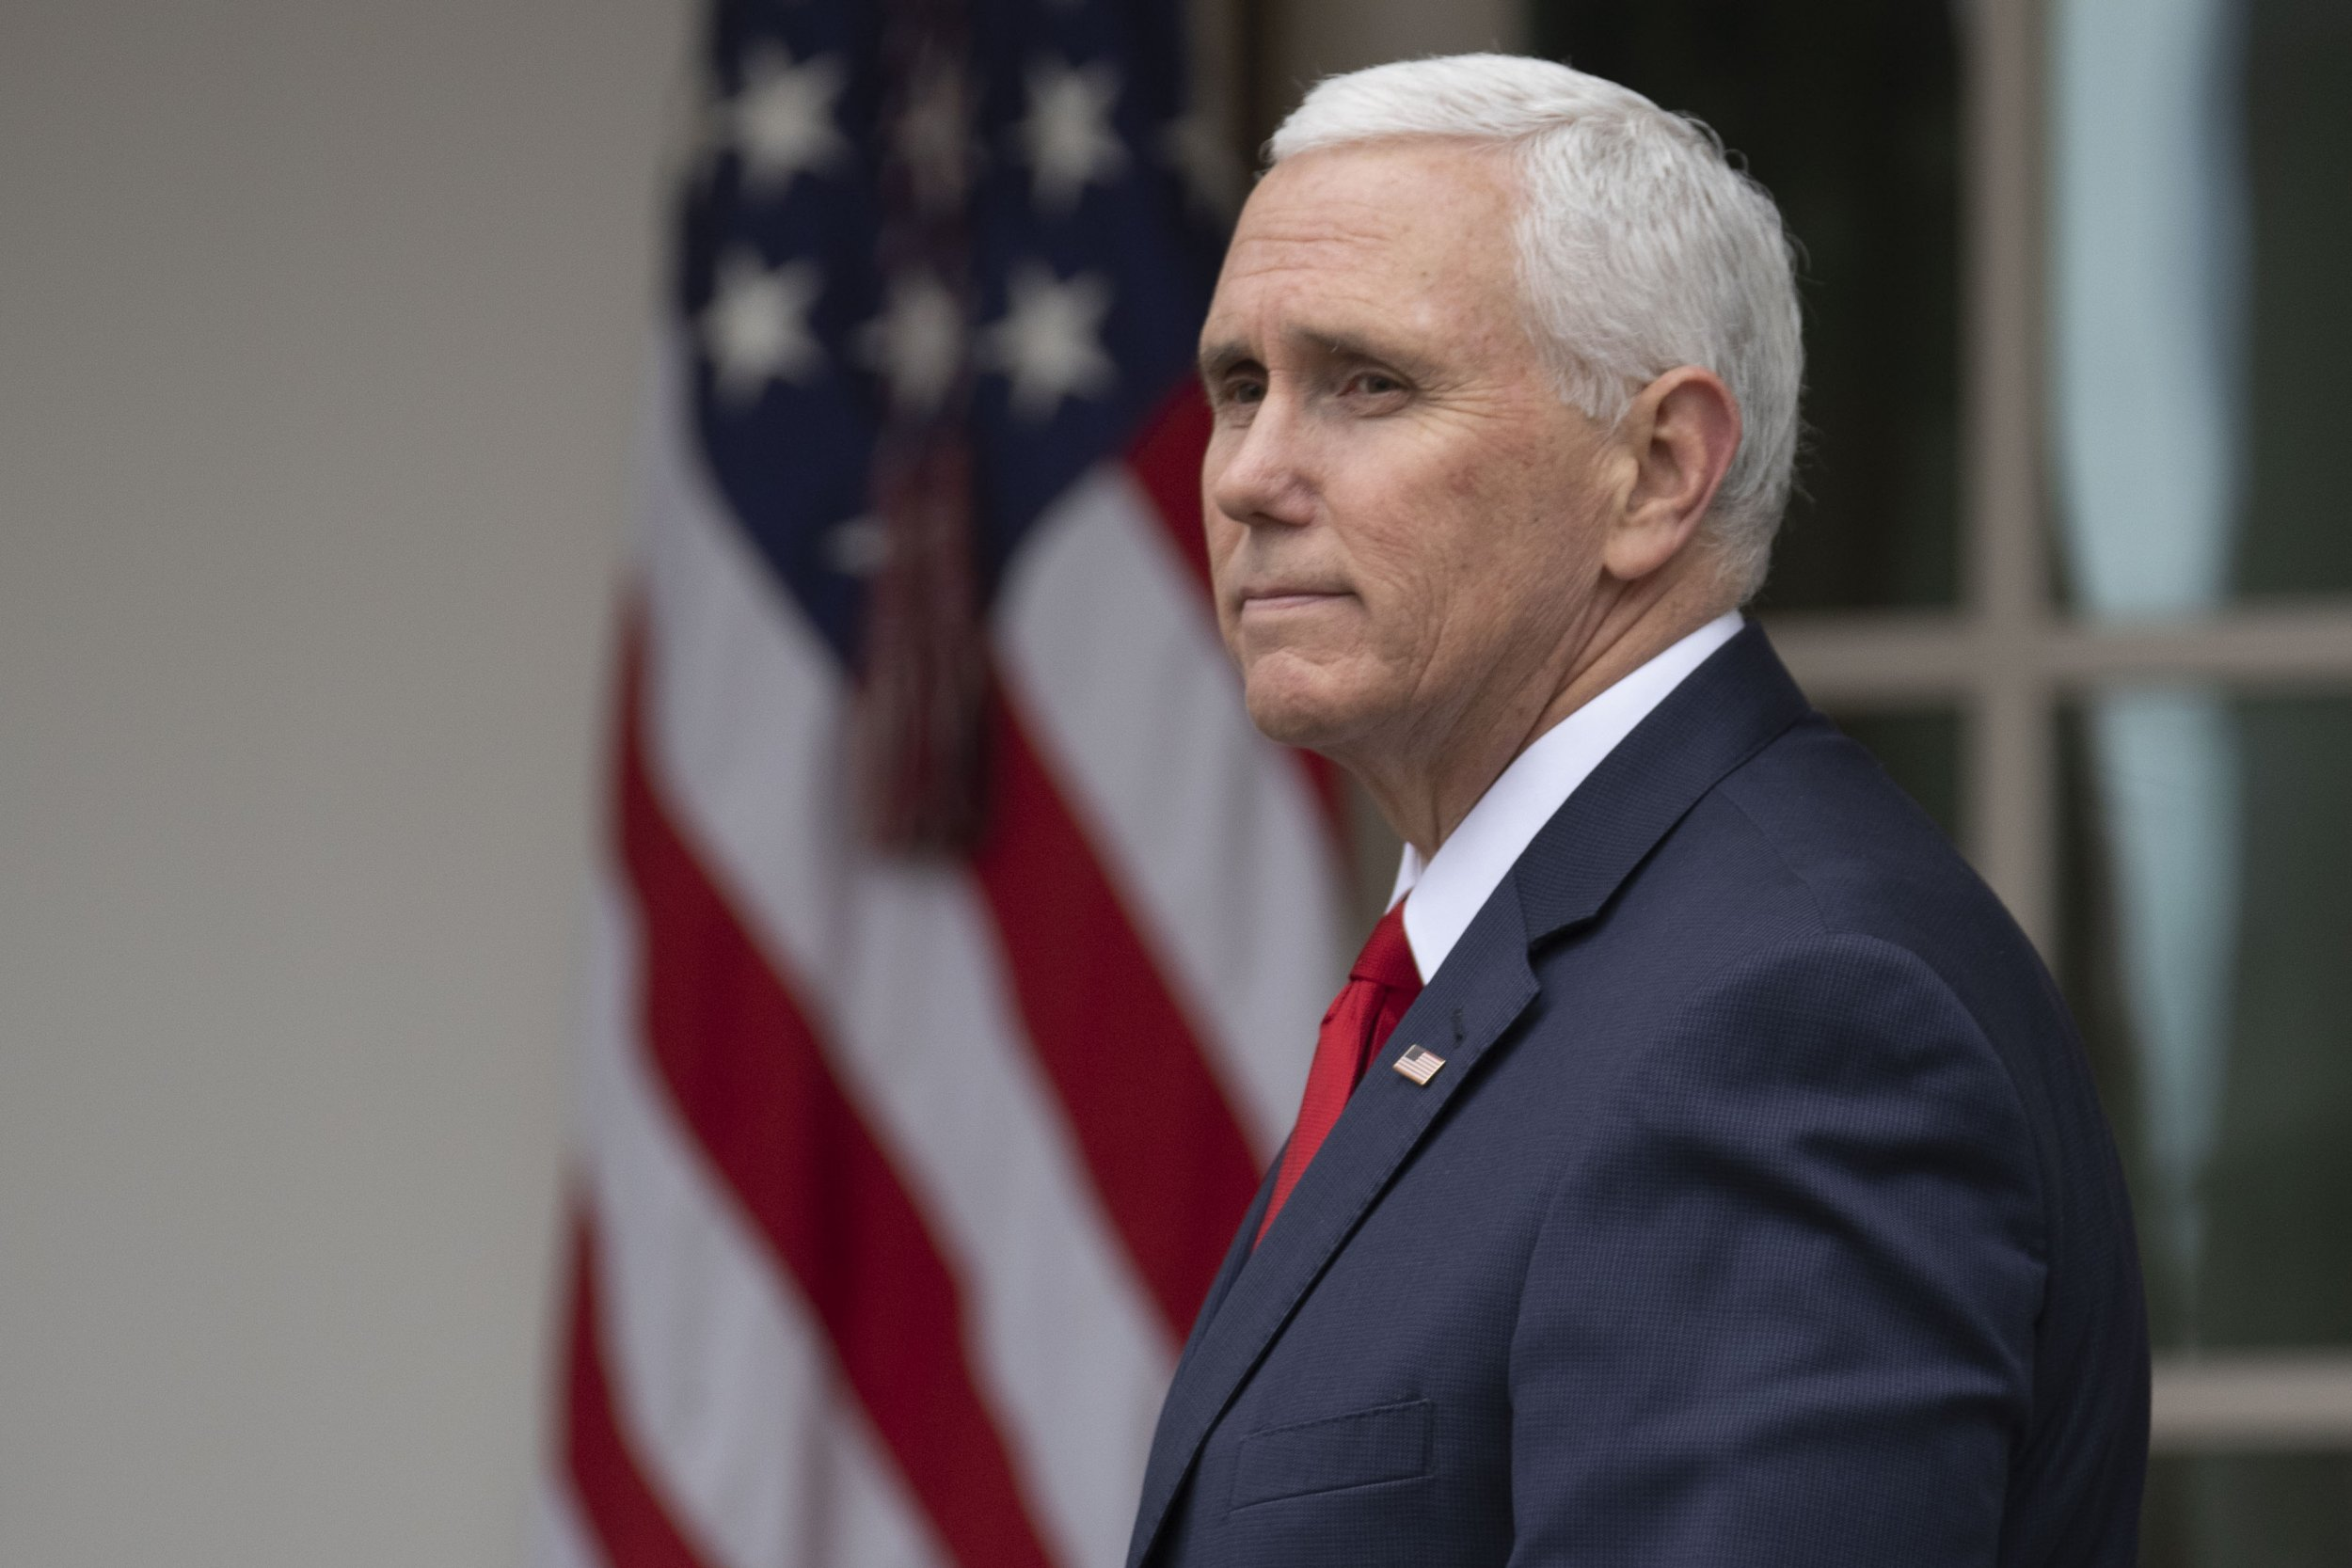 Mike Pence continues to falsely suggest thousands of terrorists come across southern border